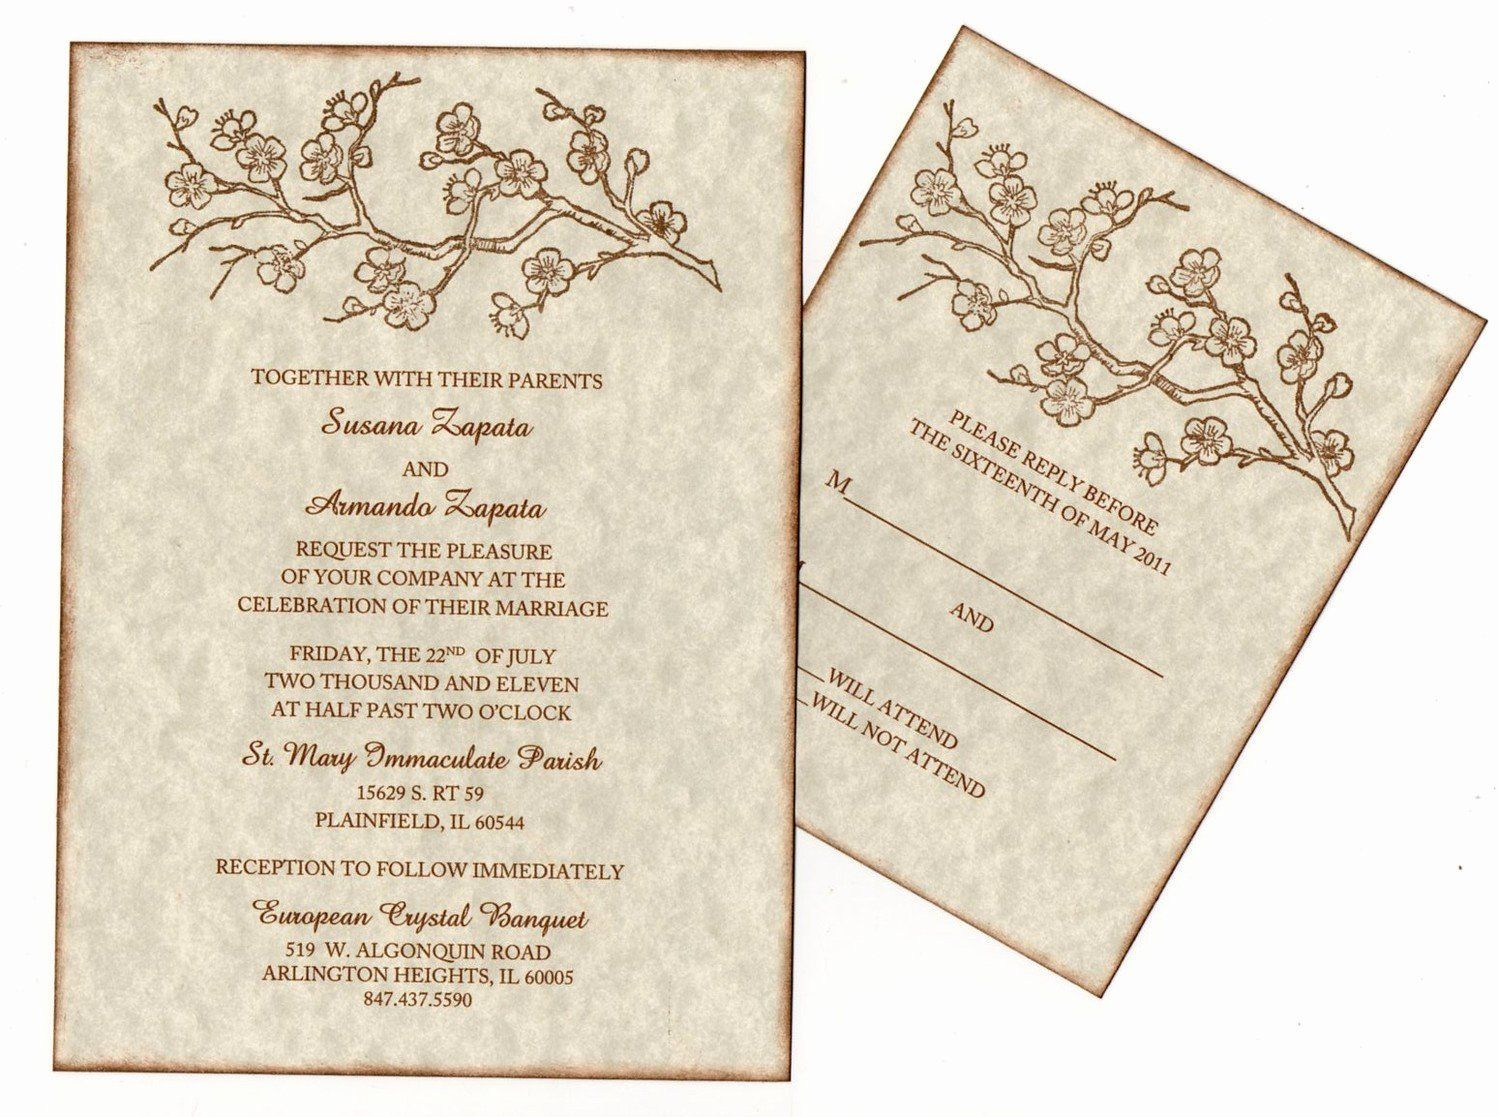 Indian Wedding Card Template Fresh South Indian Wedding In In 2020 Indian Wedding Invitation Card Design Indian Wedding Invitation Cards Wedding Invitation Card Design